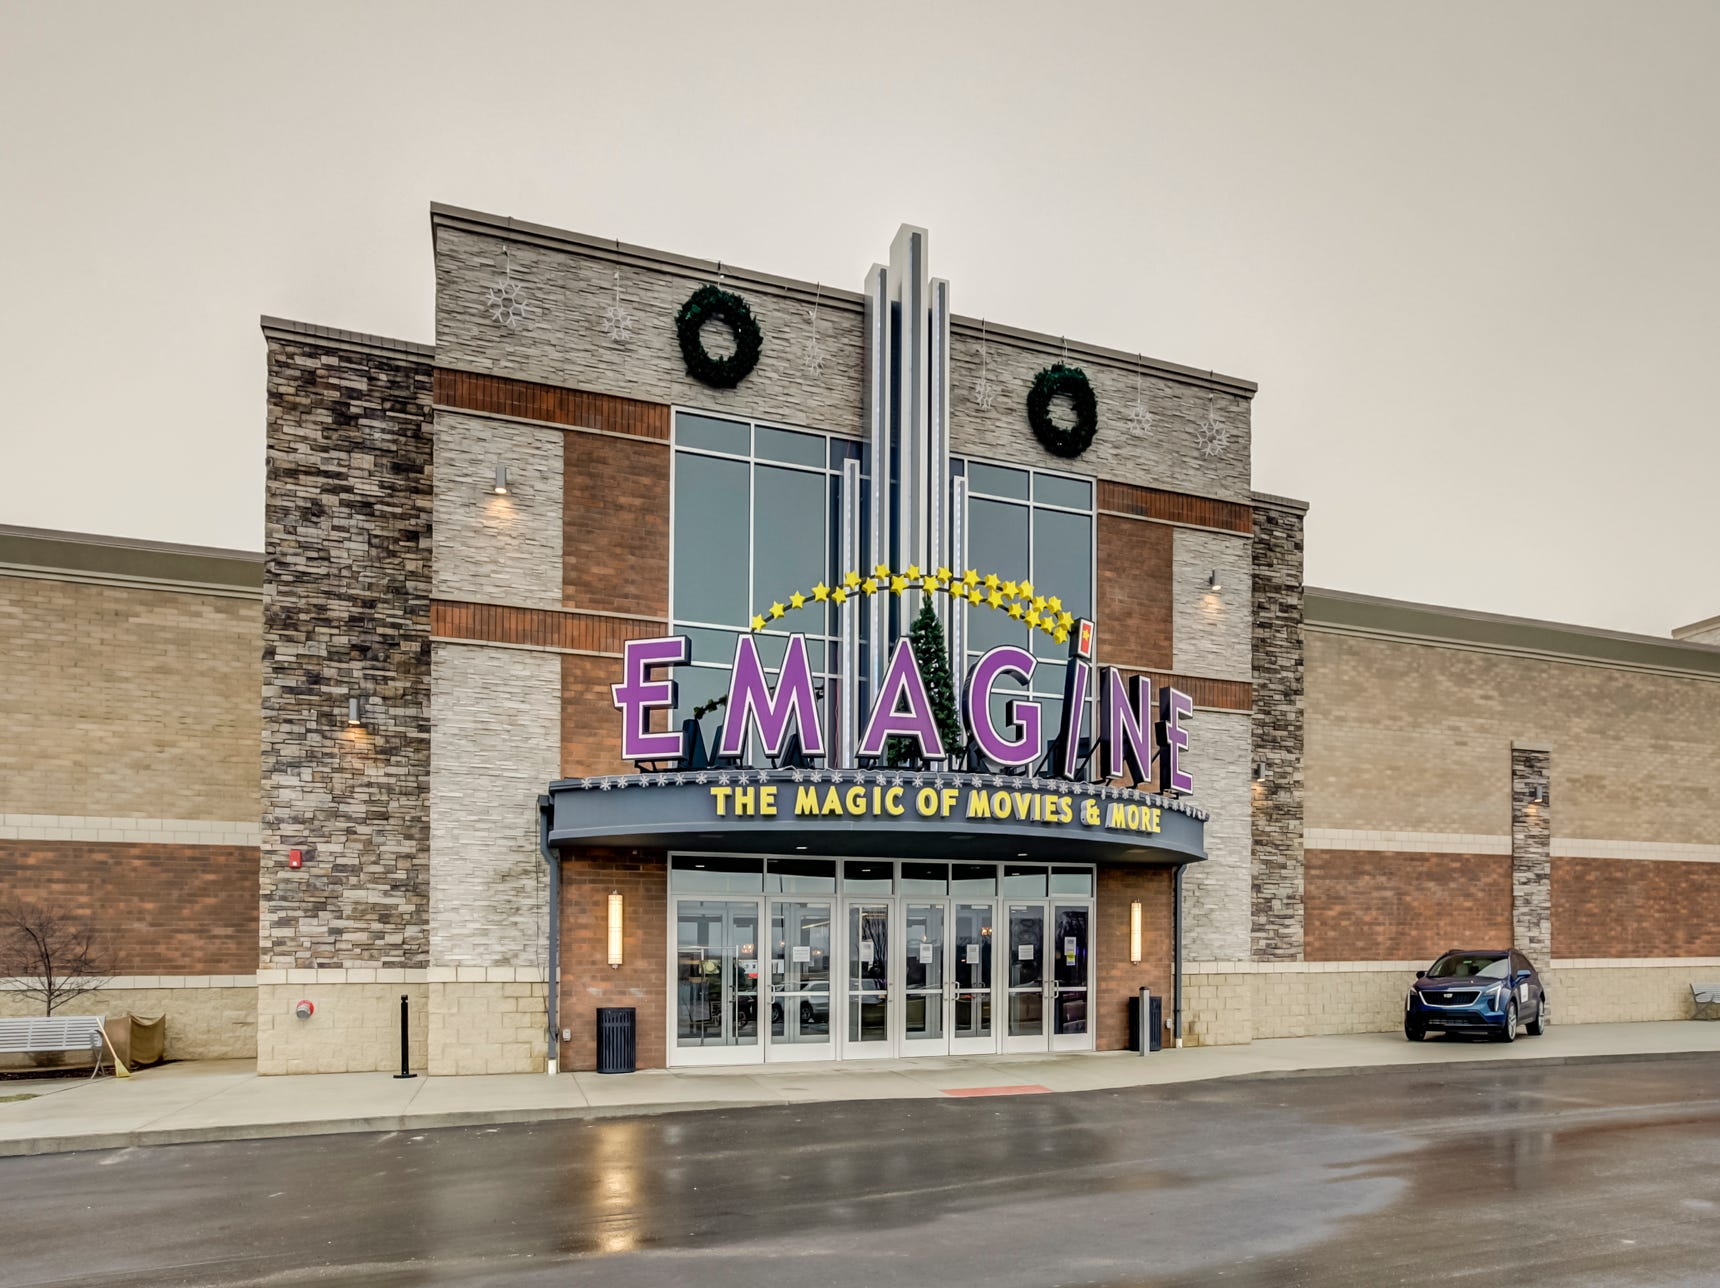 The main entrance to Emagine Entertainment's new movie theater Emagine Hartland is shown Dec. 14, 2018.